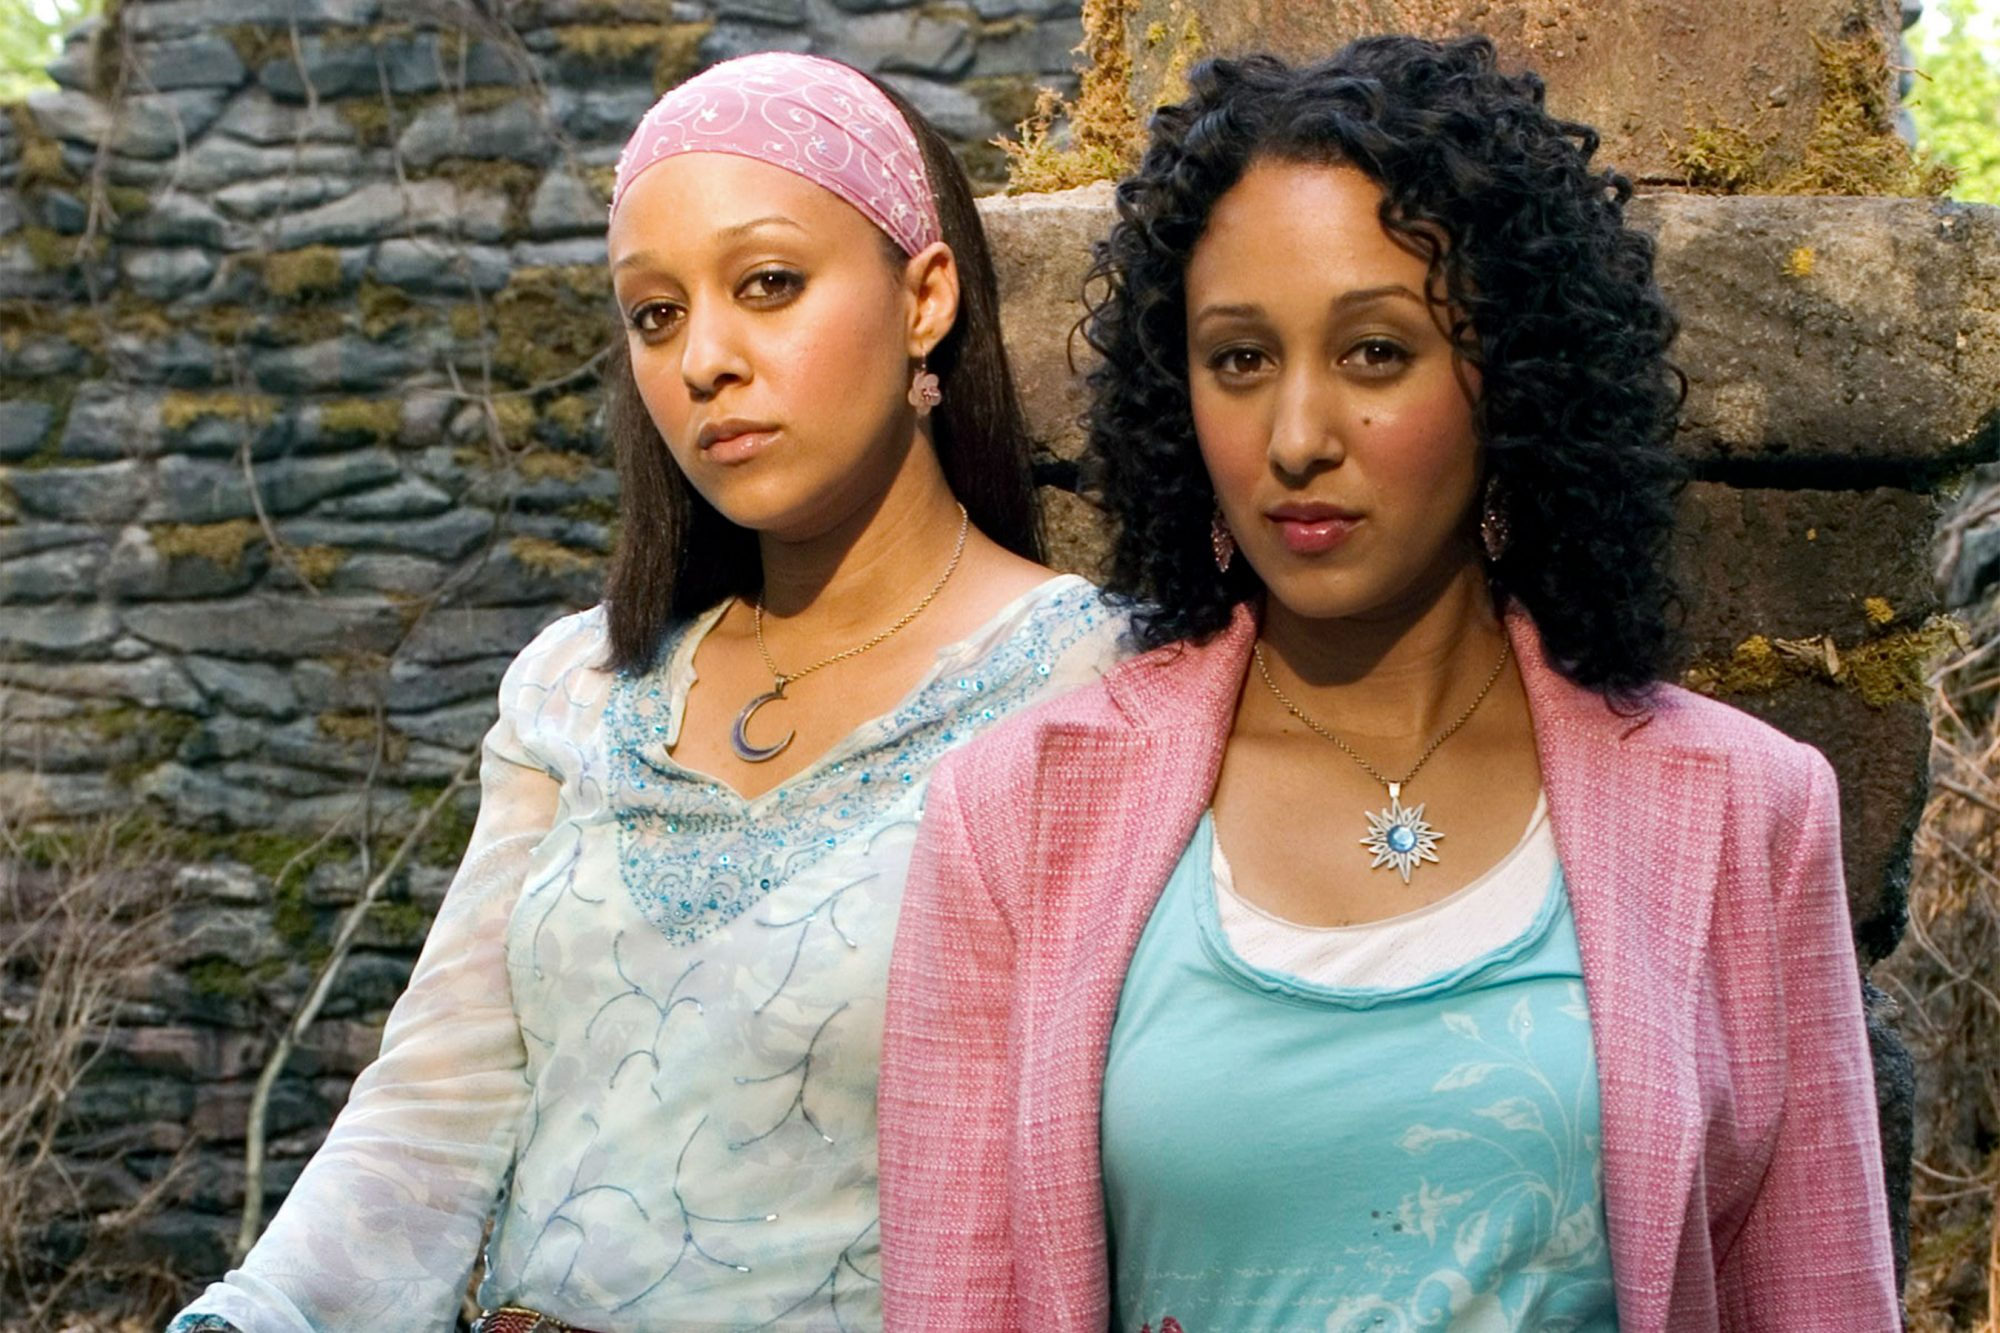 TWITCHES, Tia Mowry, Tamera Mowry, 2005, © Disney Channel / Courtesy: Everett Collection